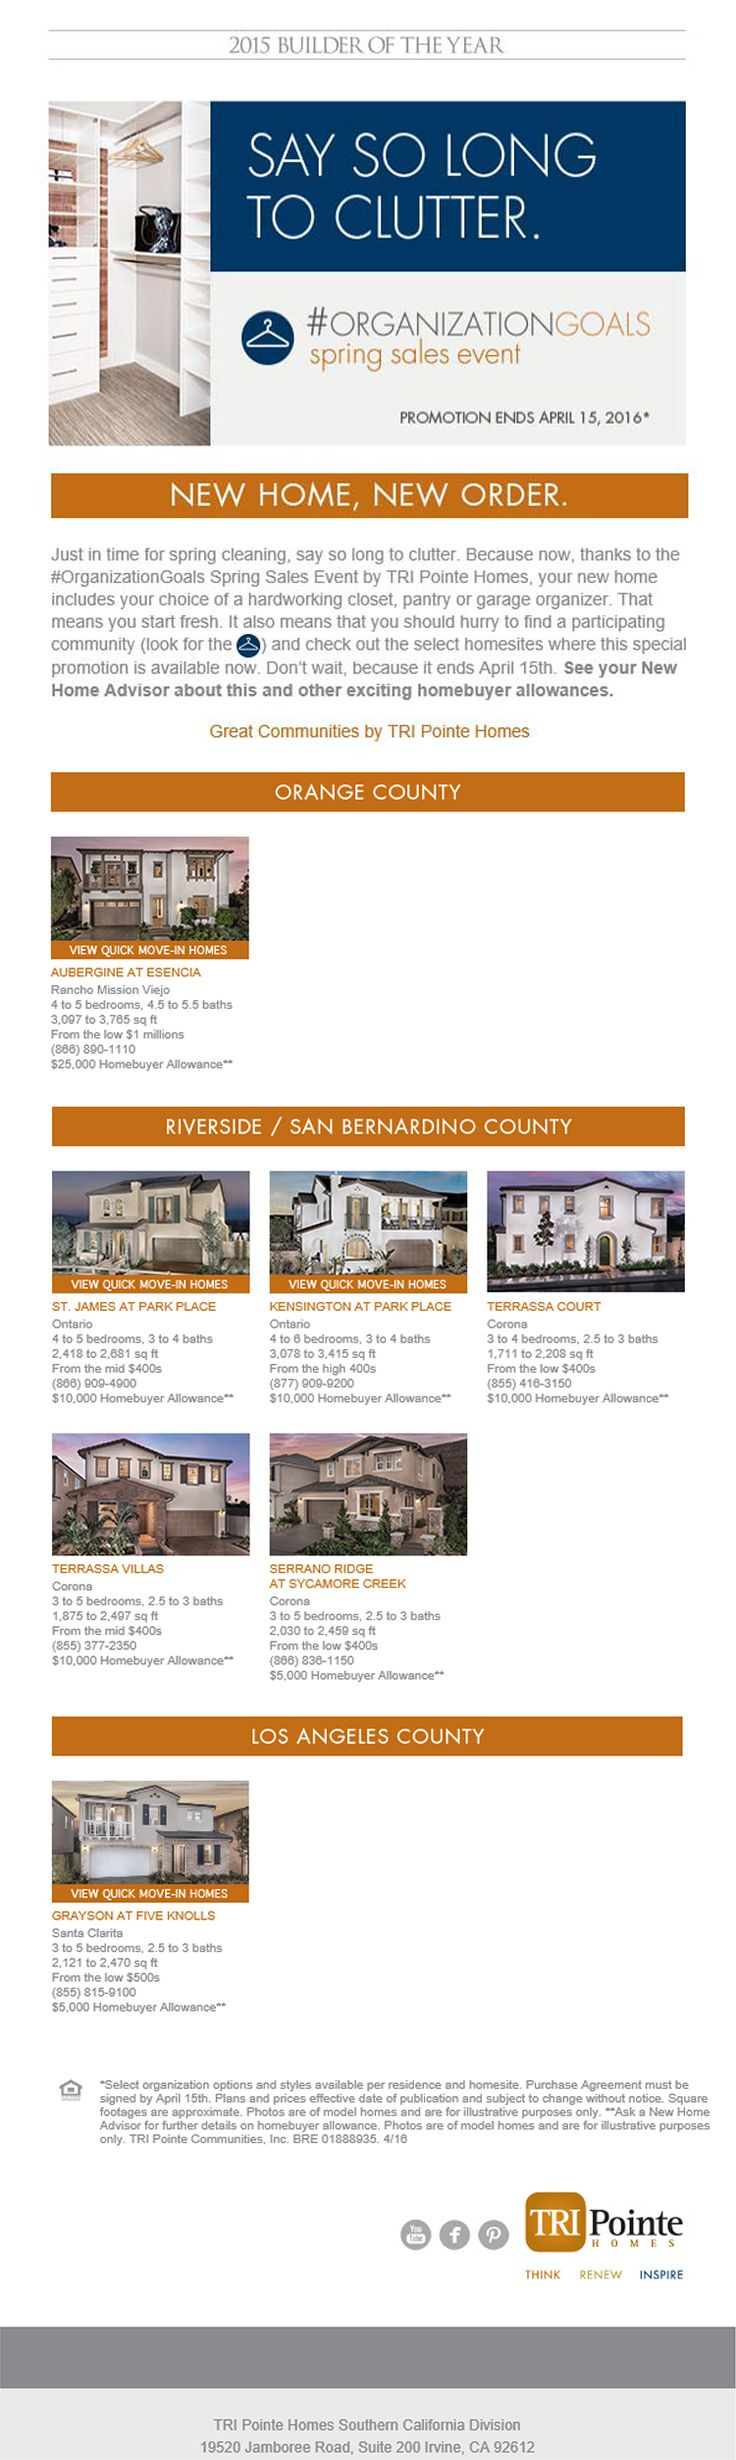 New Homes for Sale in Southern California New Home  New Order    OrganizationGoals Spring. Best 25  New homes for sale ideas on Pinterest   House plans for